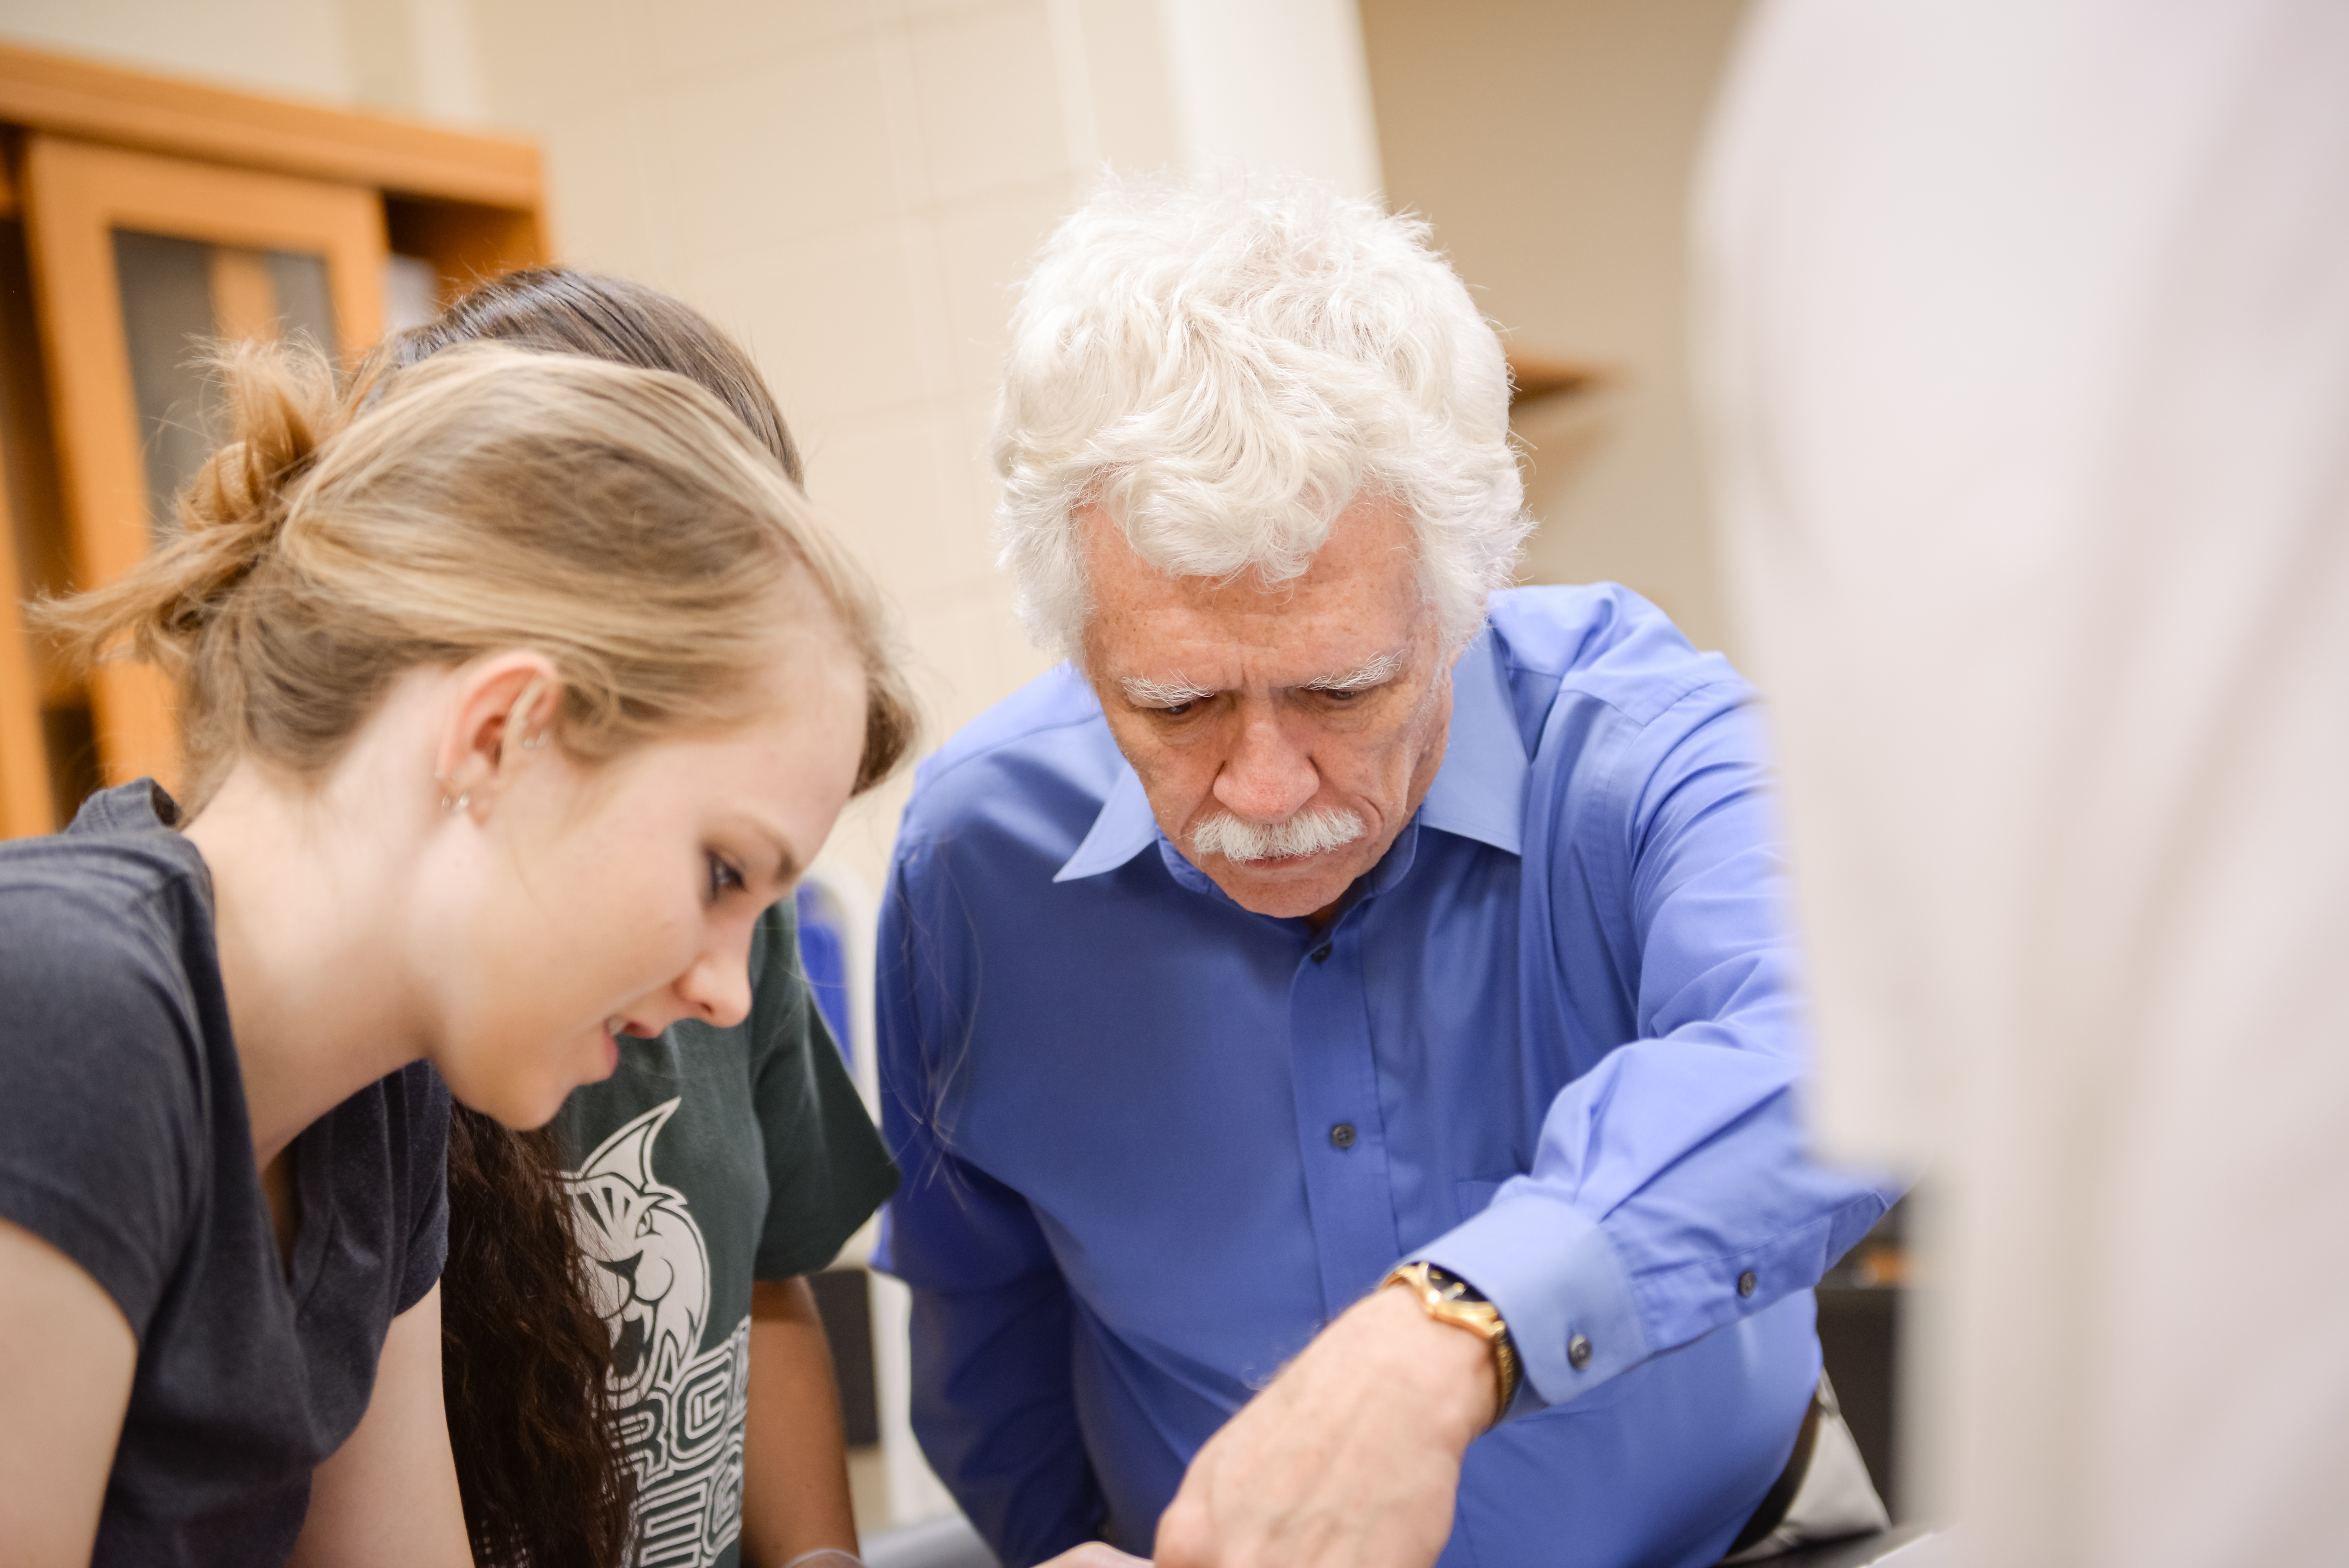 Dr. Saladin works with biology students in the lab.